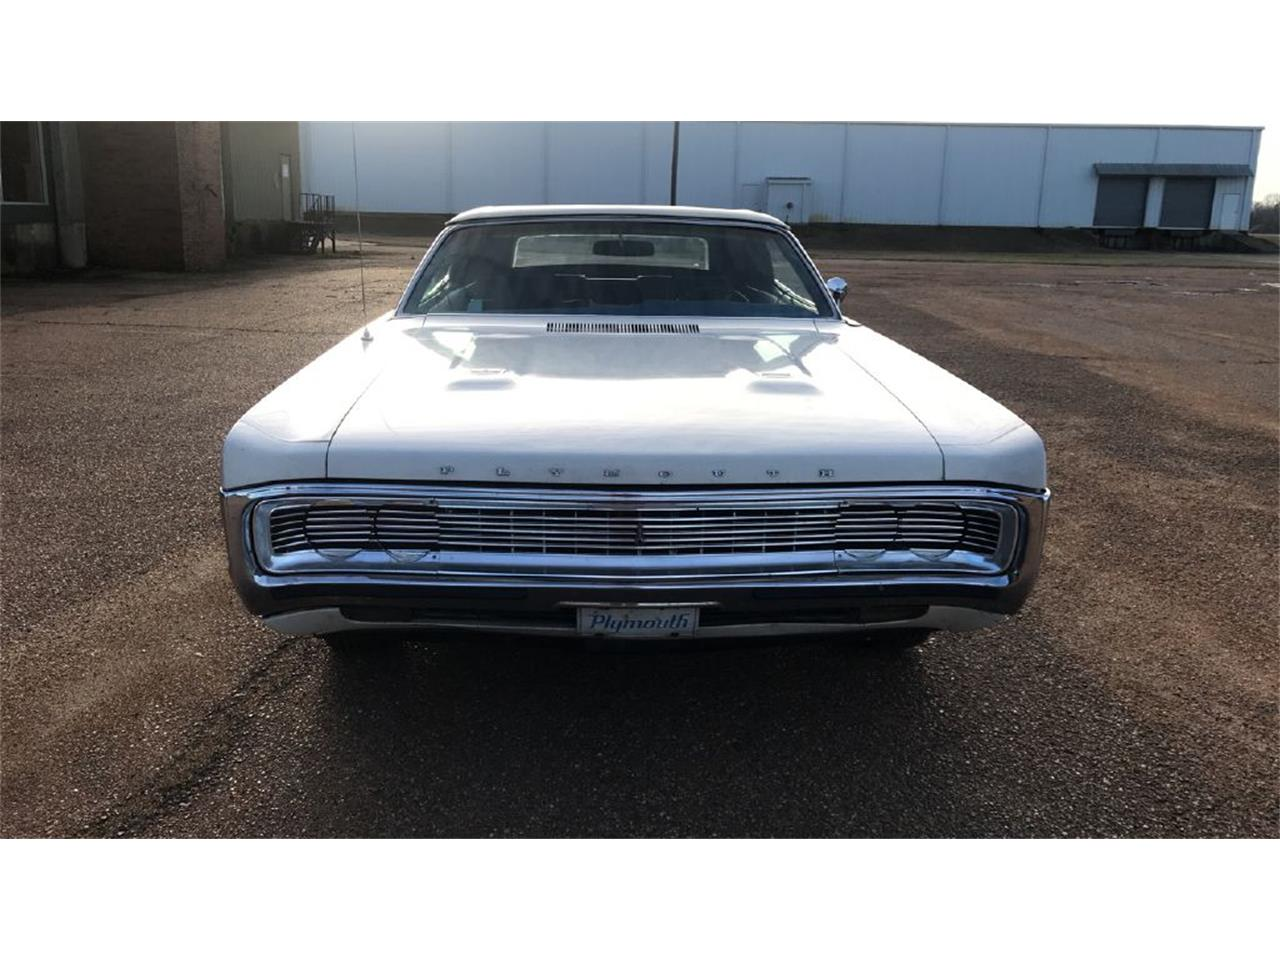 Large Picture of Classic '70 Plymouth Fury III located in Batesville Mississippi Offered by Cotton Warehouse Classic Cars - PX5T